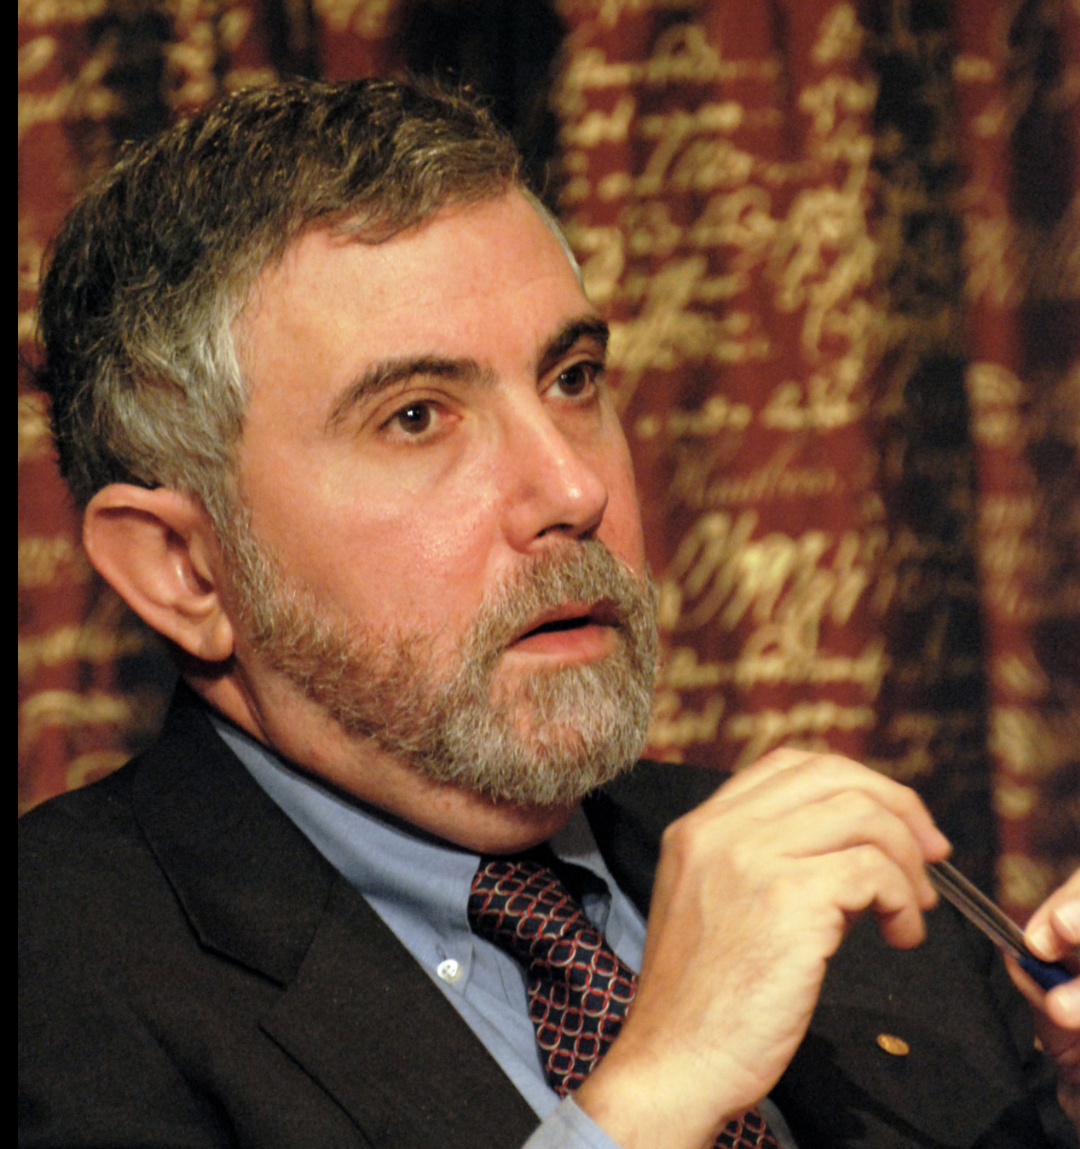 Paul Robin Krugman is an American economist who is the Distinguished Professor of Economics at the Graduate Center of the City University of New York, and a columnist for The New York Times (PHOTO/File).